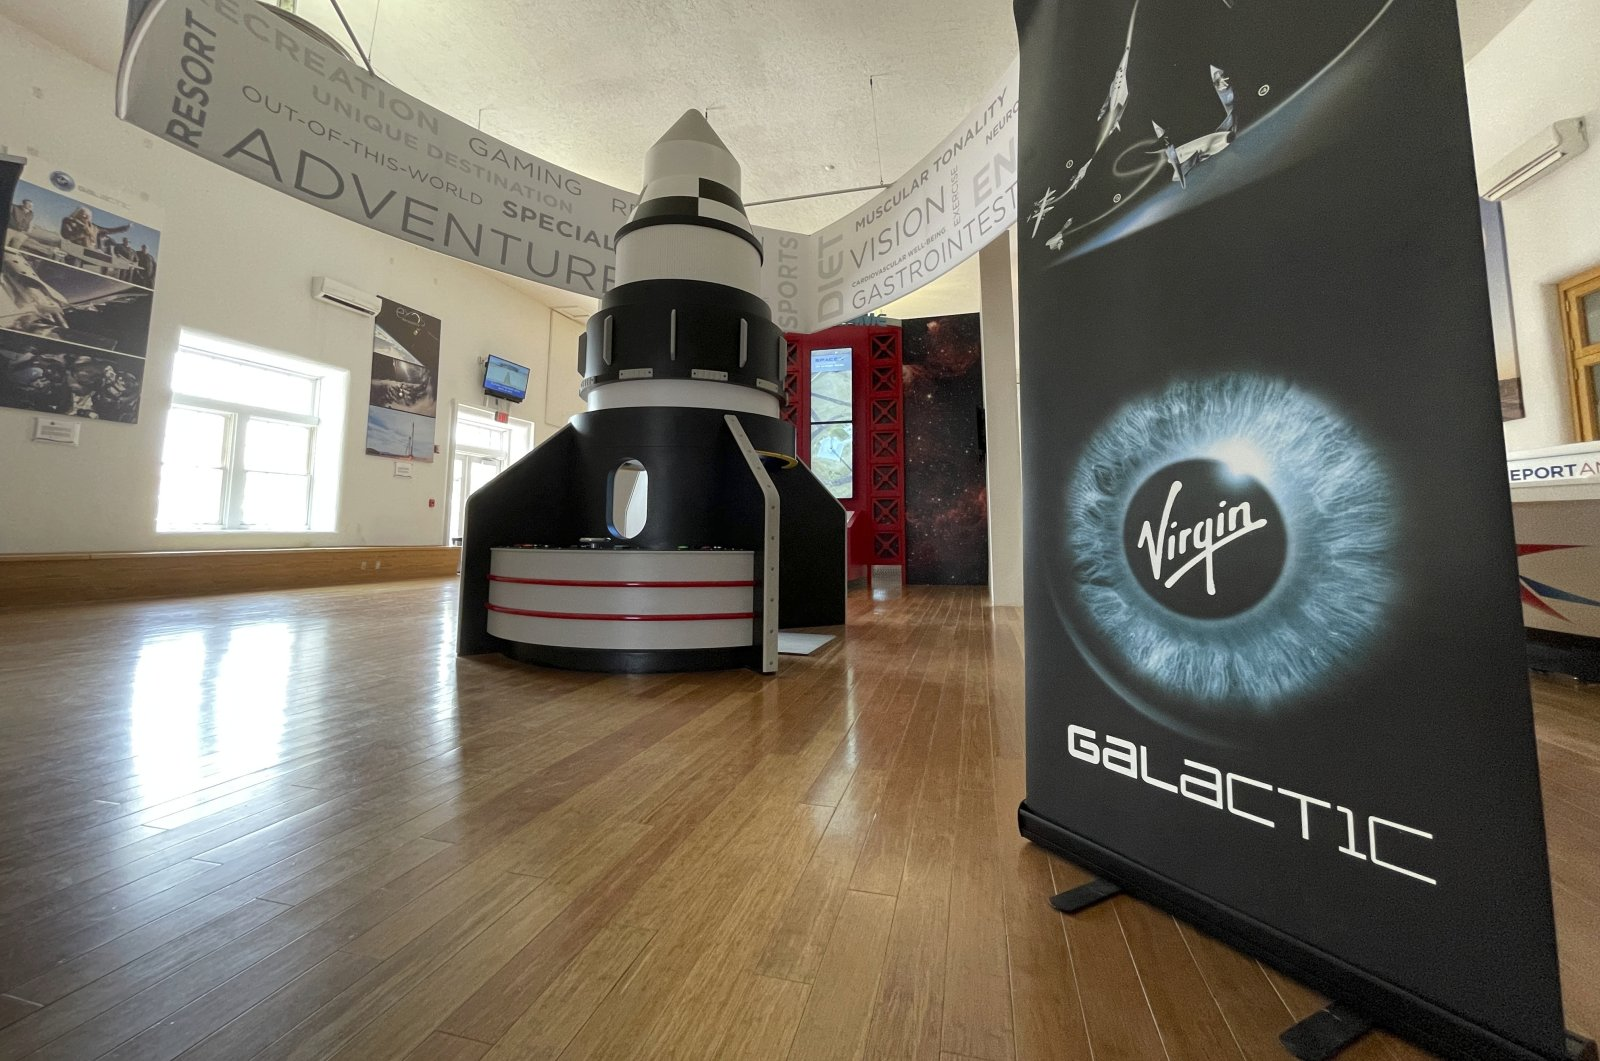 A toy rocket is on display at the visitor center in Truth or Consequences, New Mexico, July 12, 2021. (AP Photo)